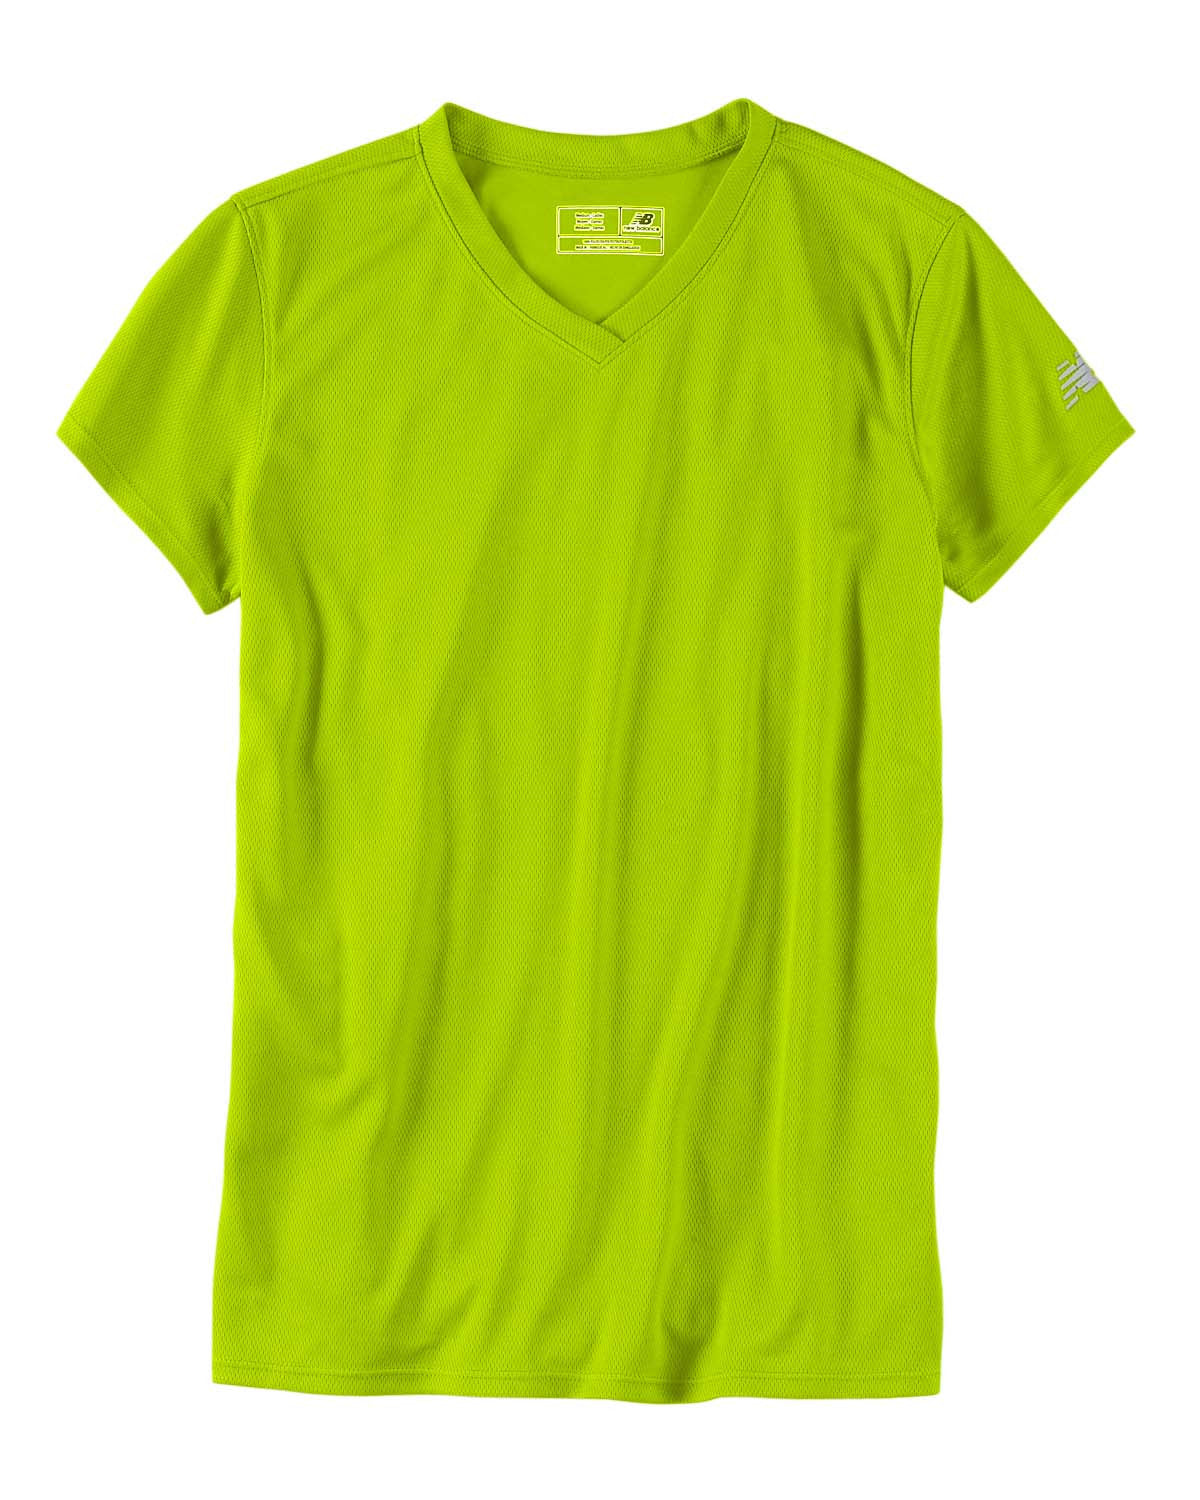 New Balance Women's Ndurance Athletic T-Shirt